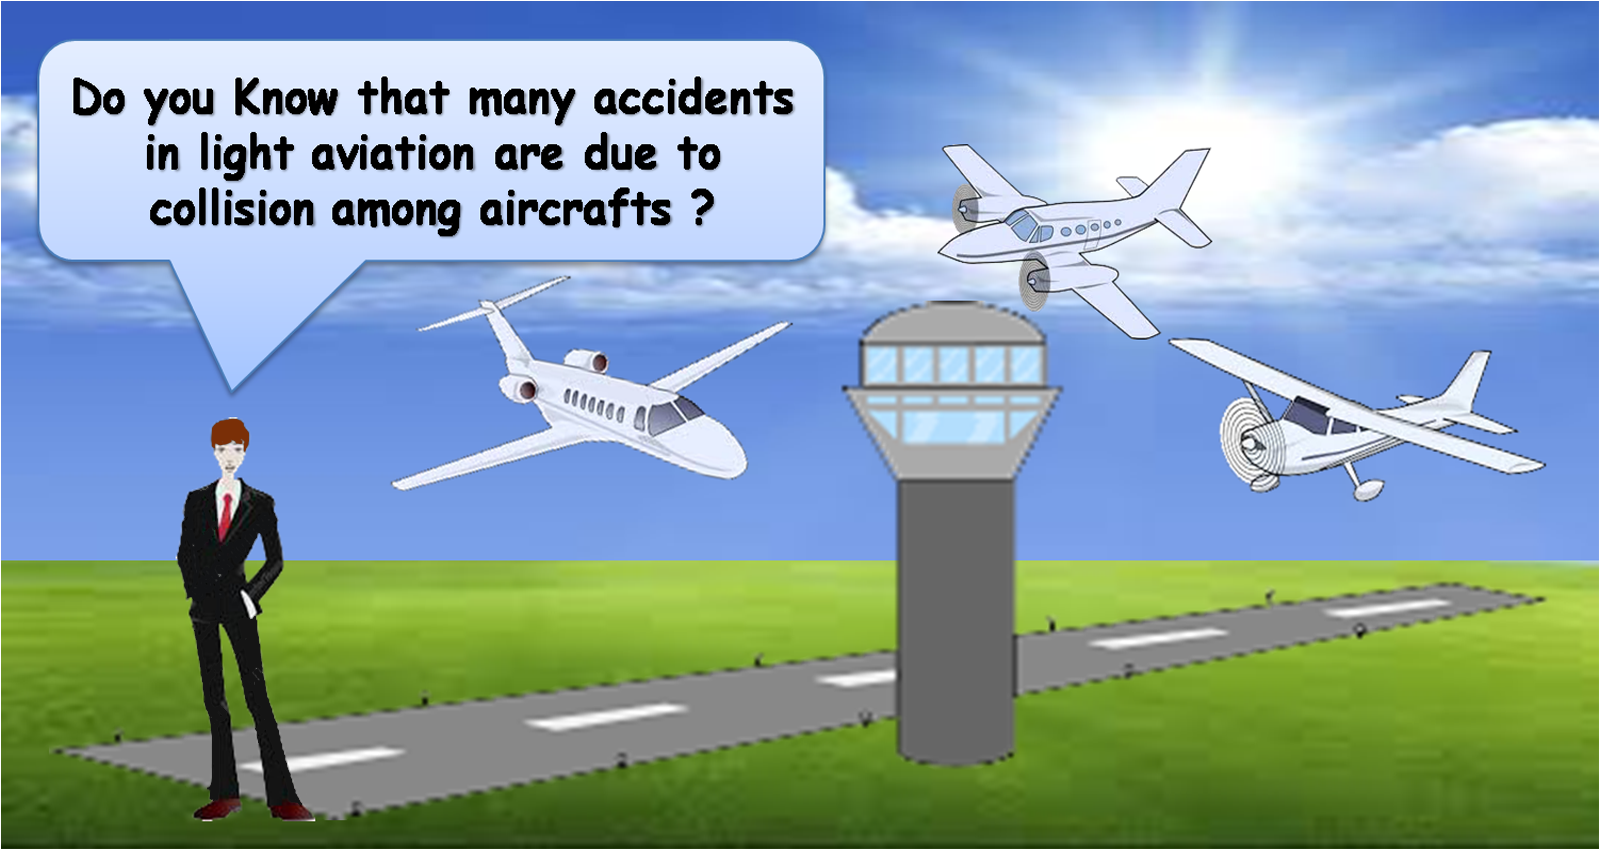 Many accidents in light aviation are due to the collision among aircrafts and drone.